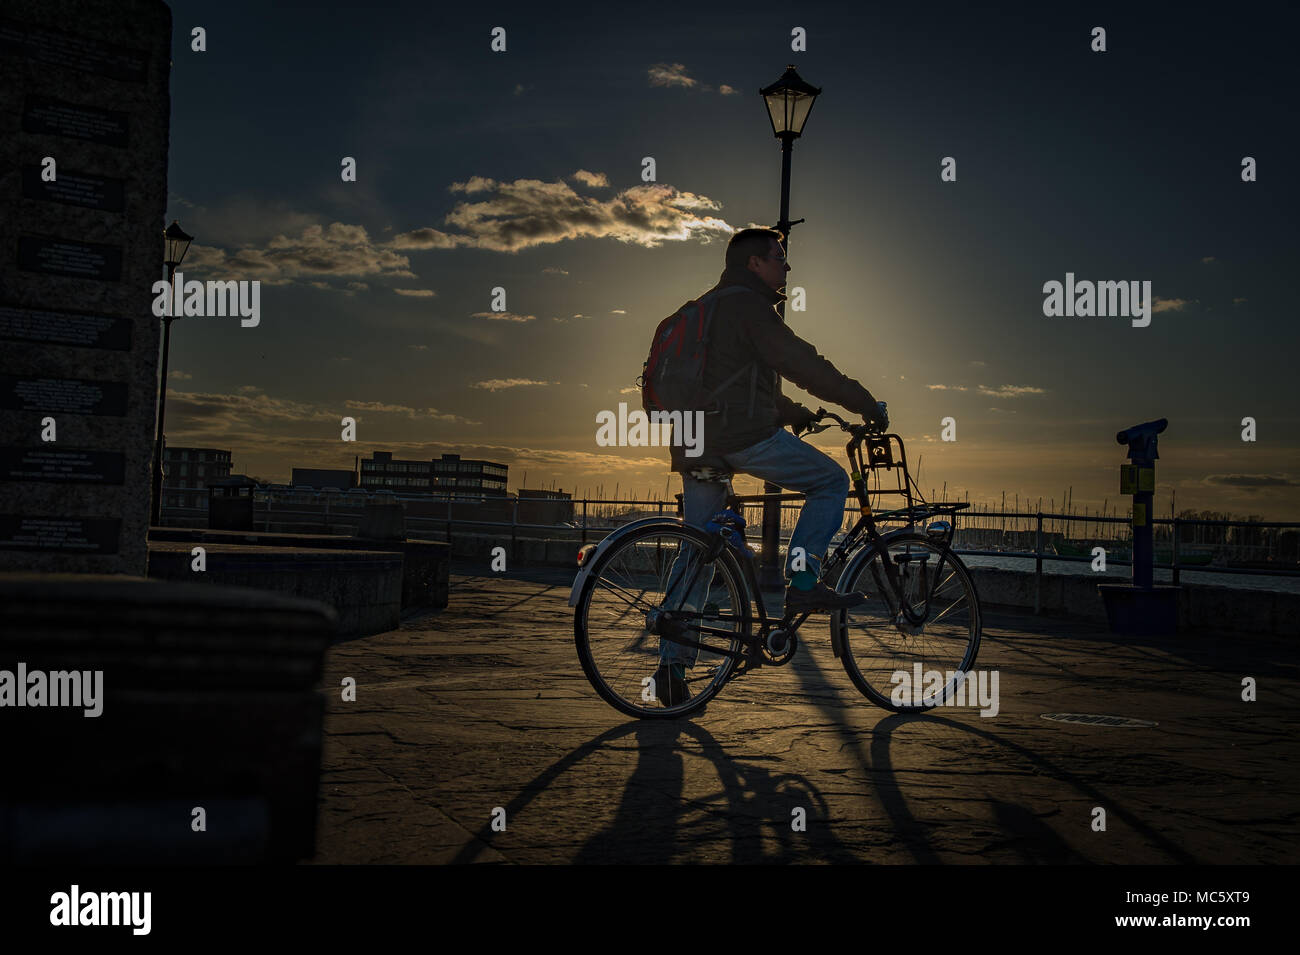 Silhouette of a Cyclist at Sunset in Old Portsmouth - Hampshire, UK Stock Photo